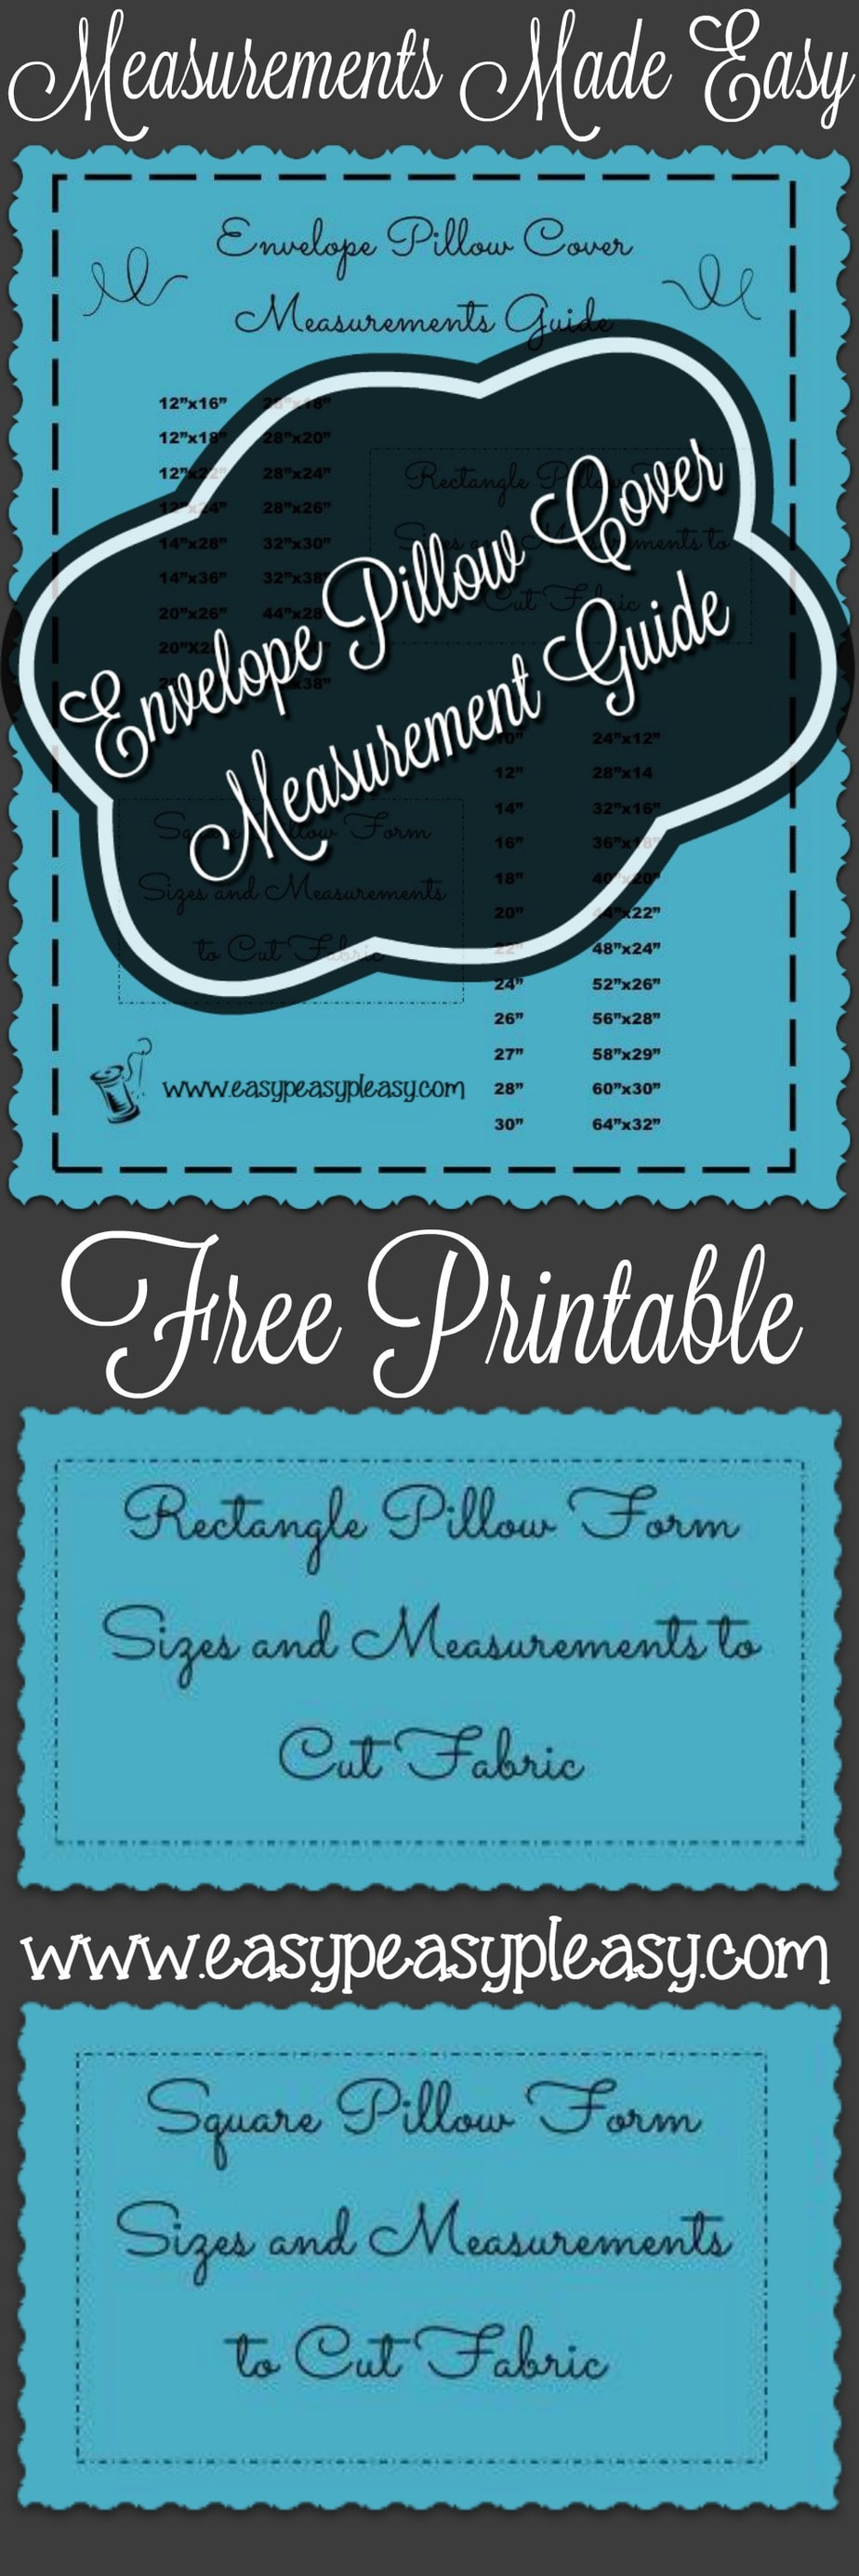 Use this quick reference free printable Envelope Pillow Cover Measurement Guide to stop doing the math and get to sewing your envelope pillow covers.